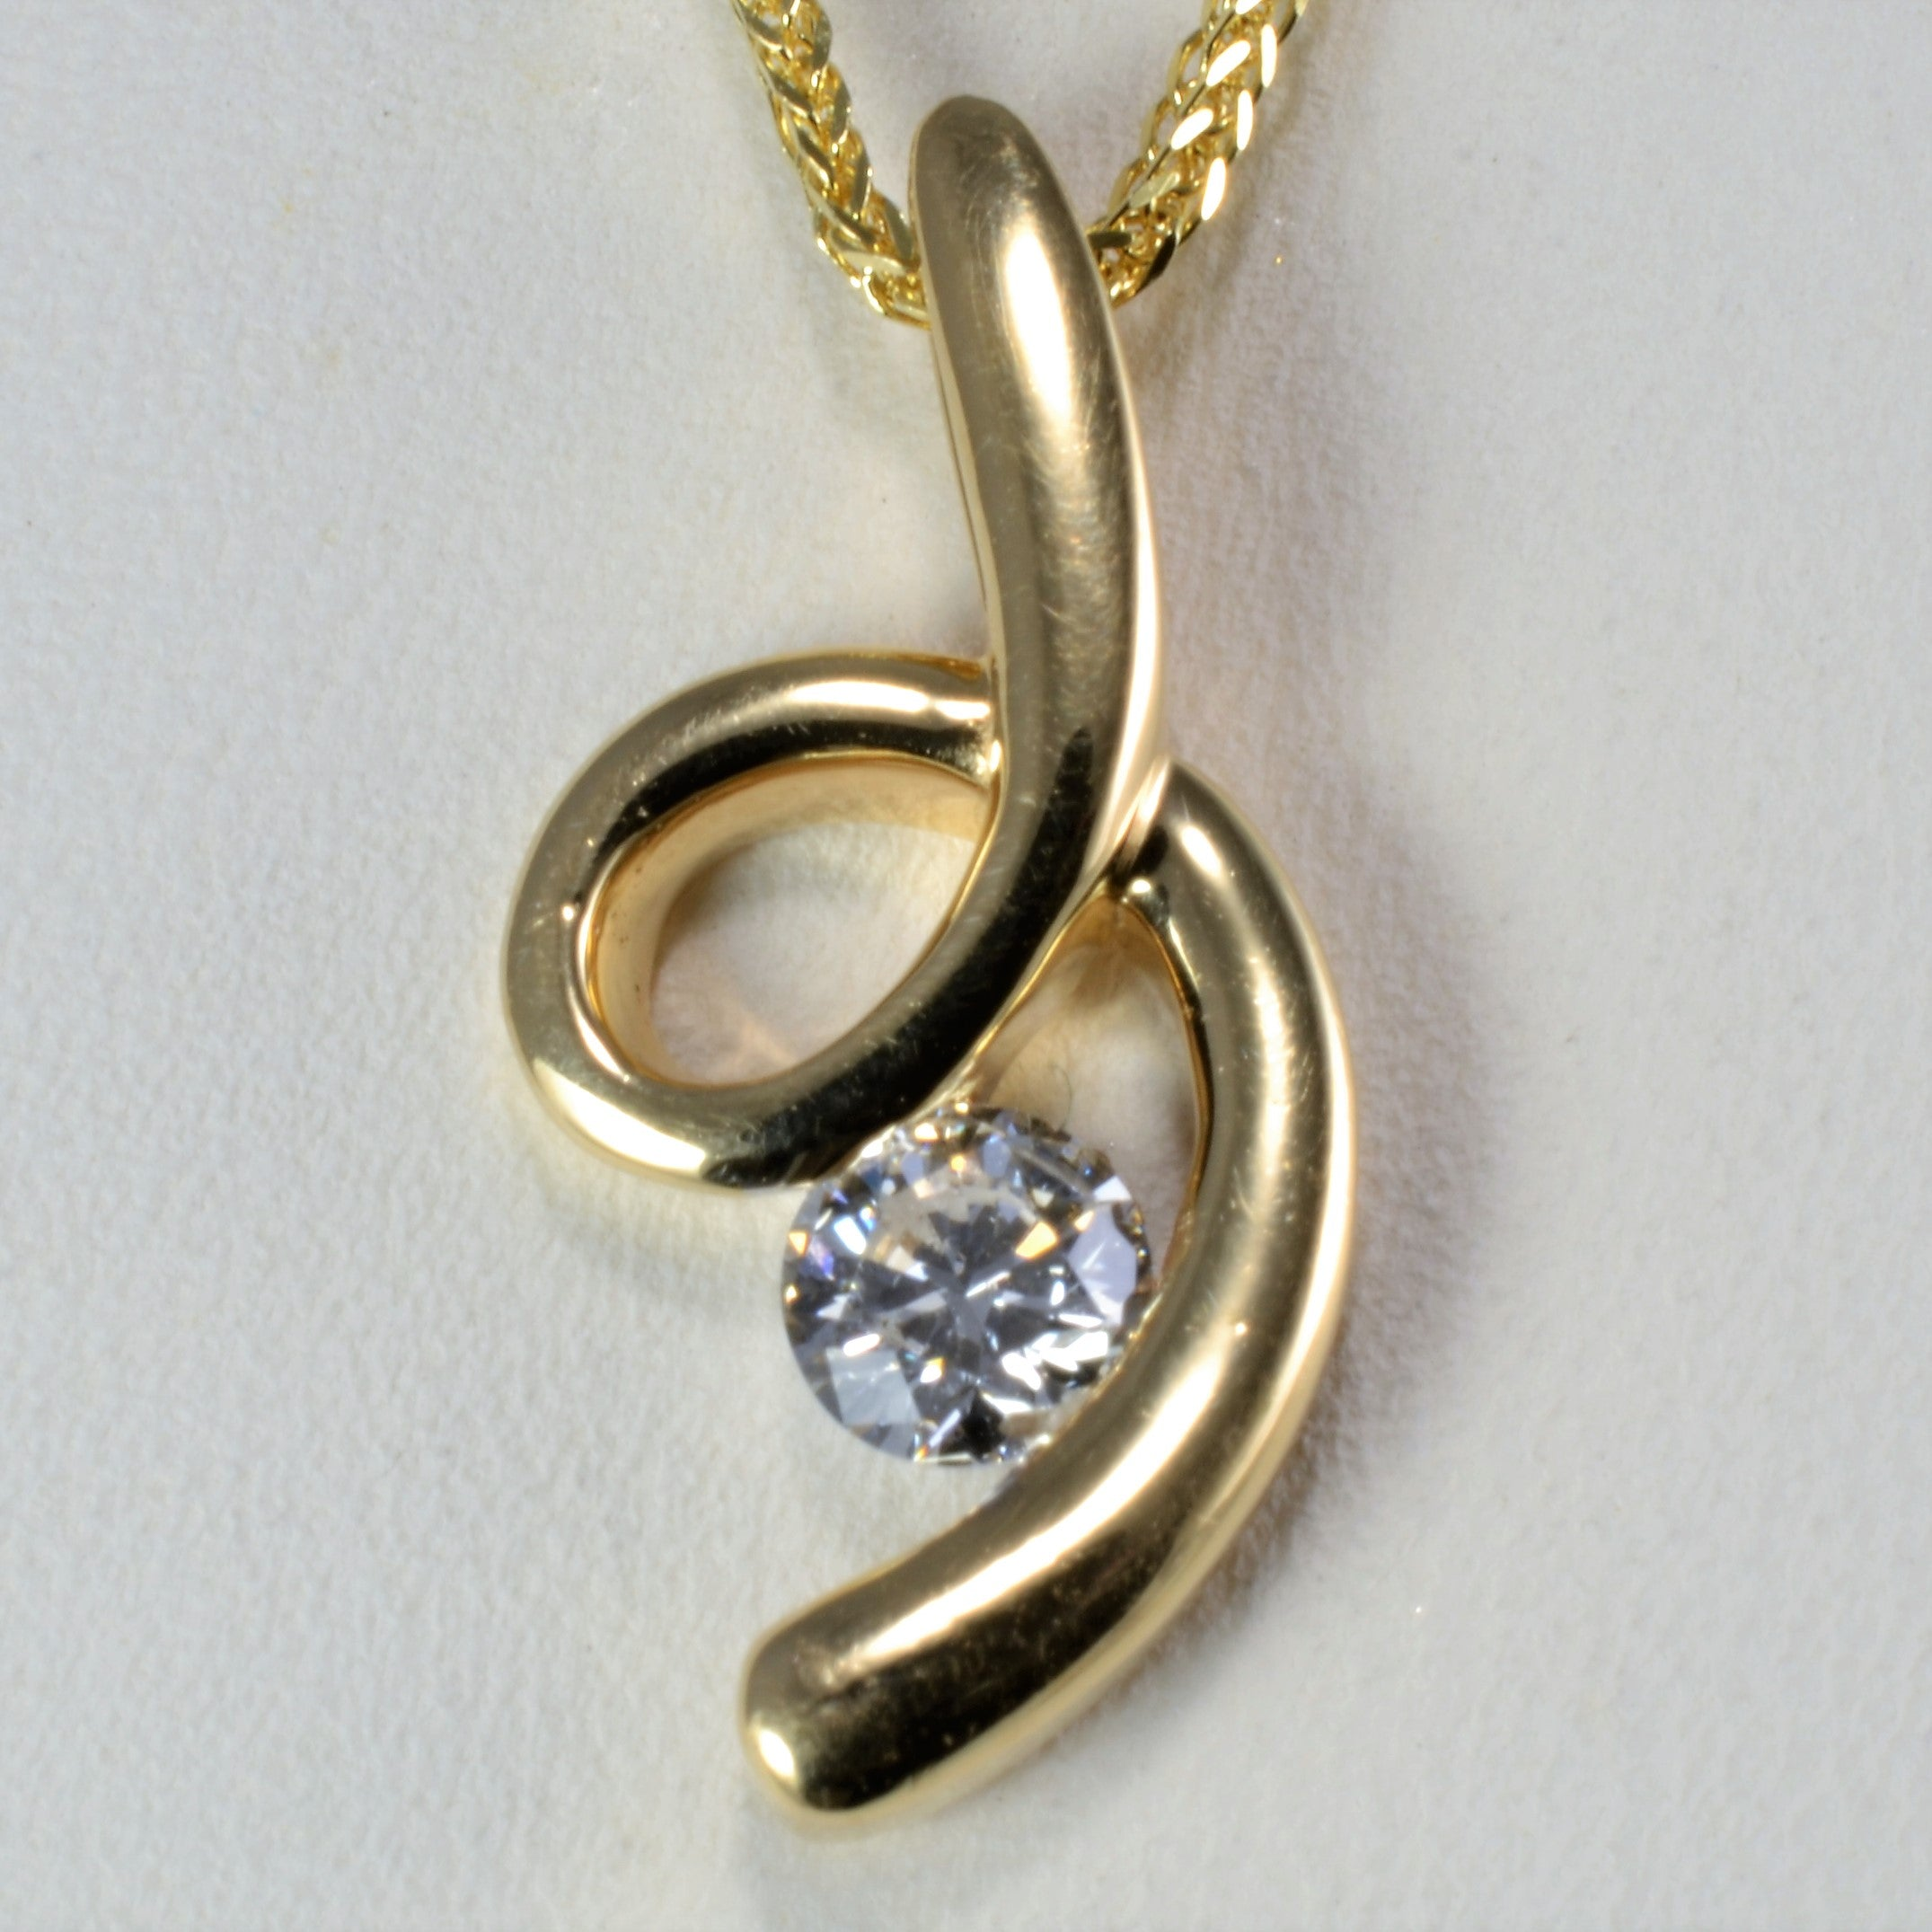 Free Form Ribbon Swirl Diamond Pendant Necklace | 0.22 ct, 19''|